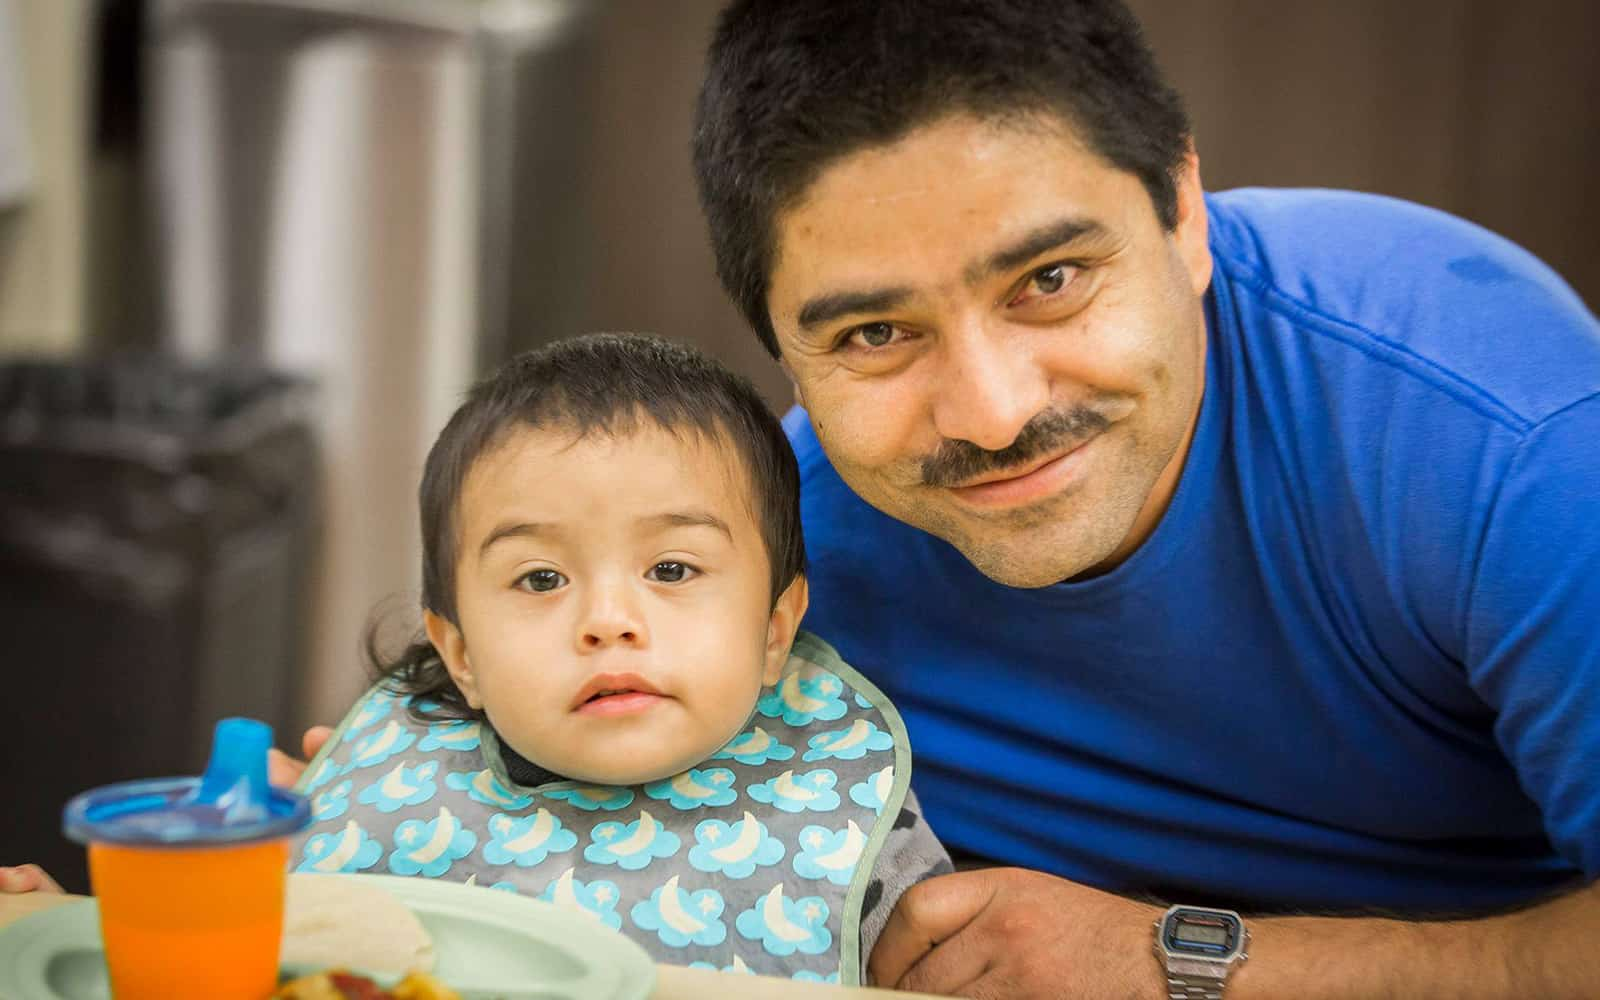 Infant boy eating with dad